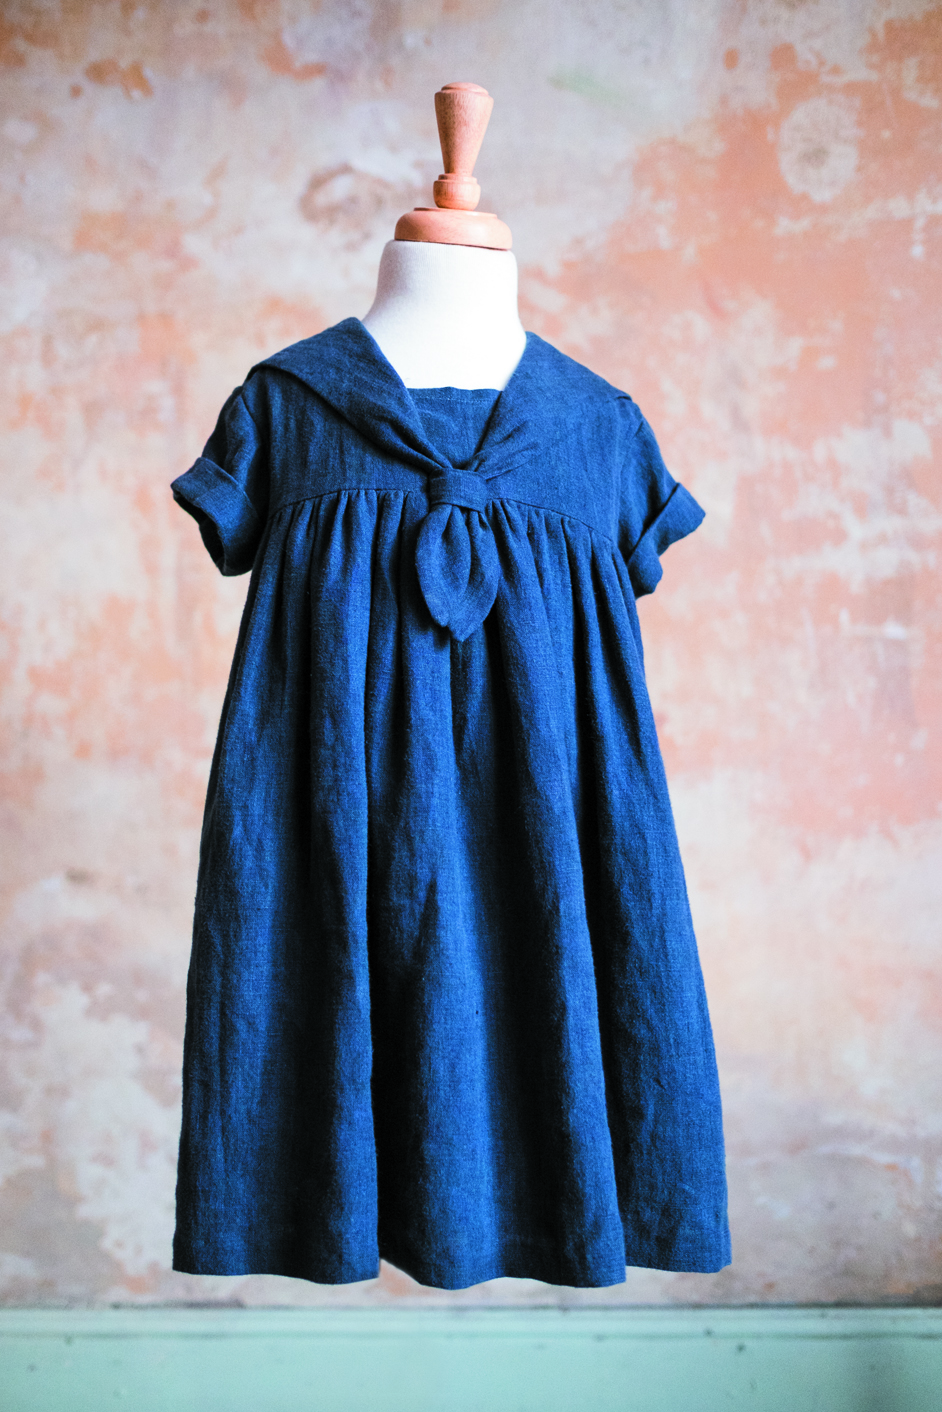 The Skipper Childrens Dress - Girls Sewing Patterns from Merchants and Mills